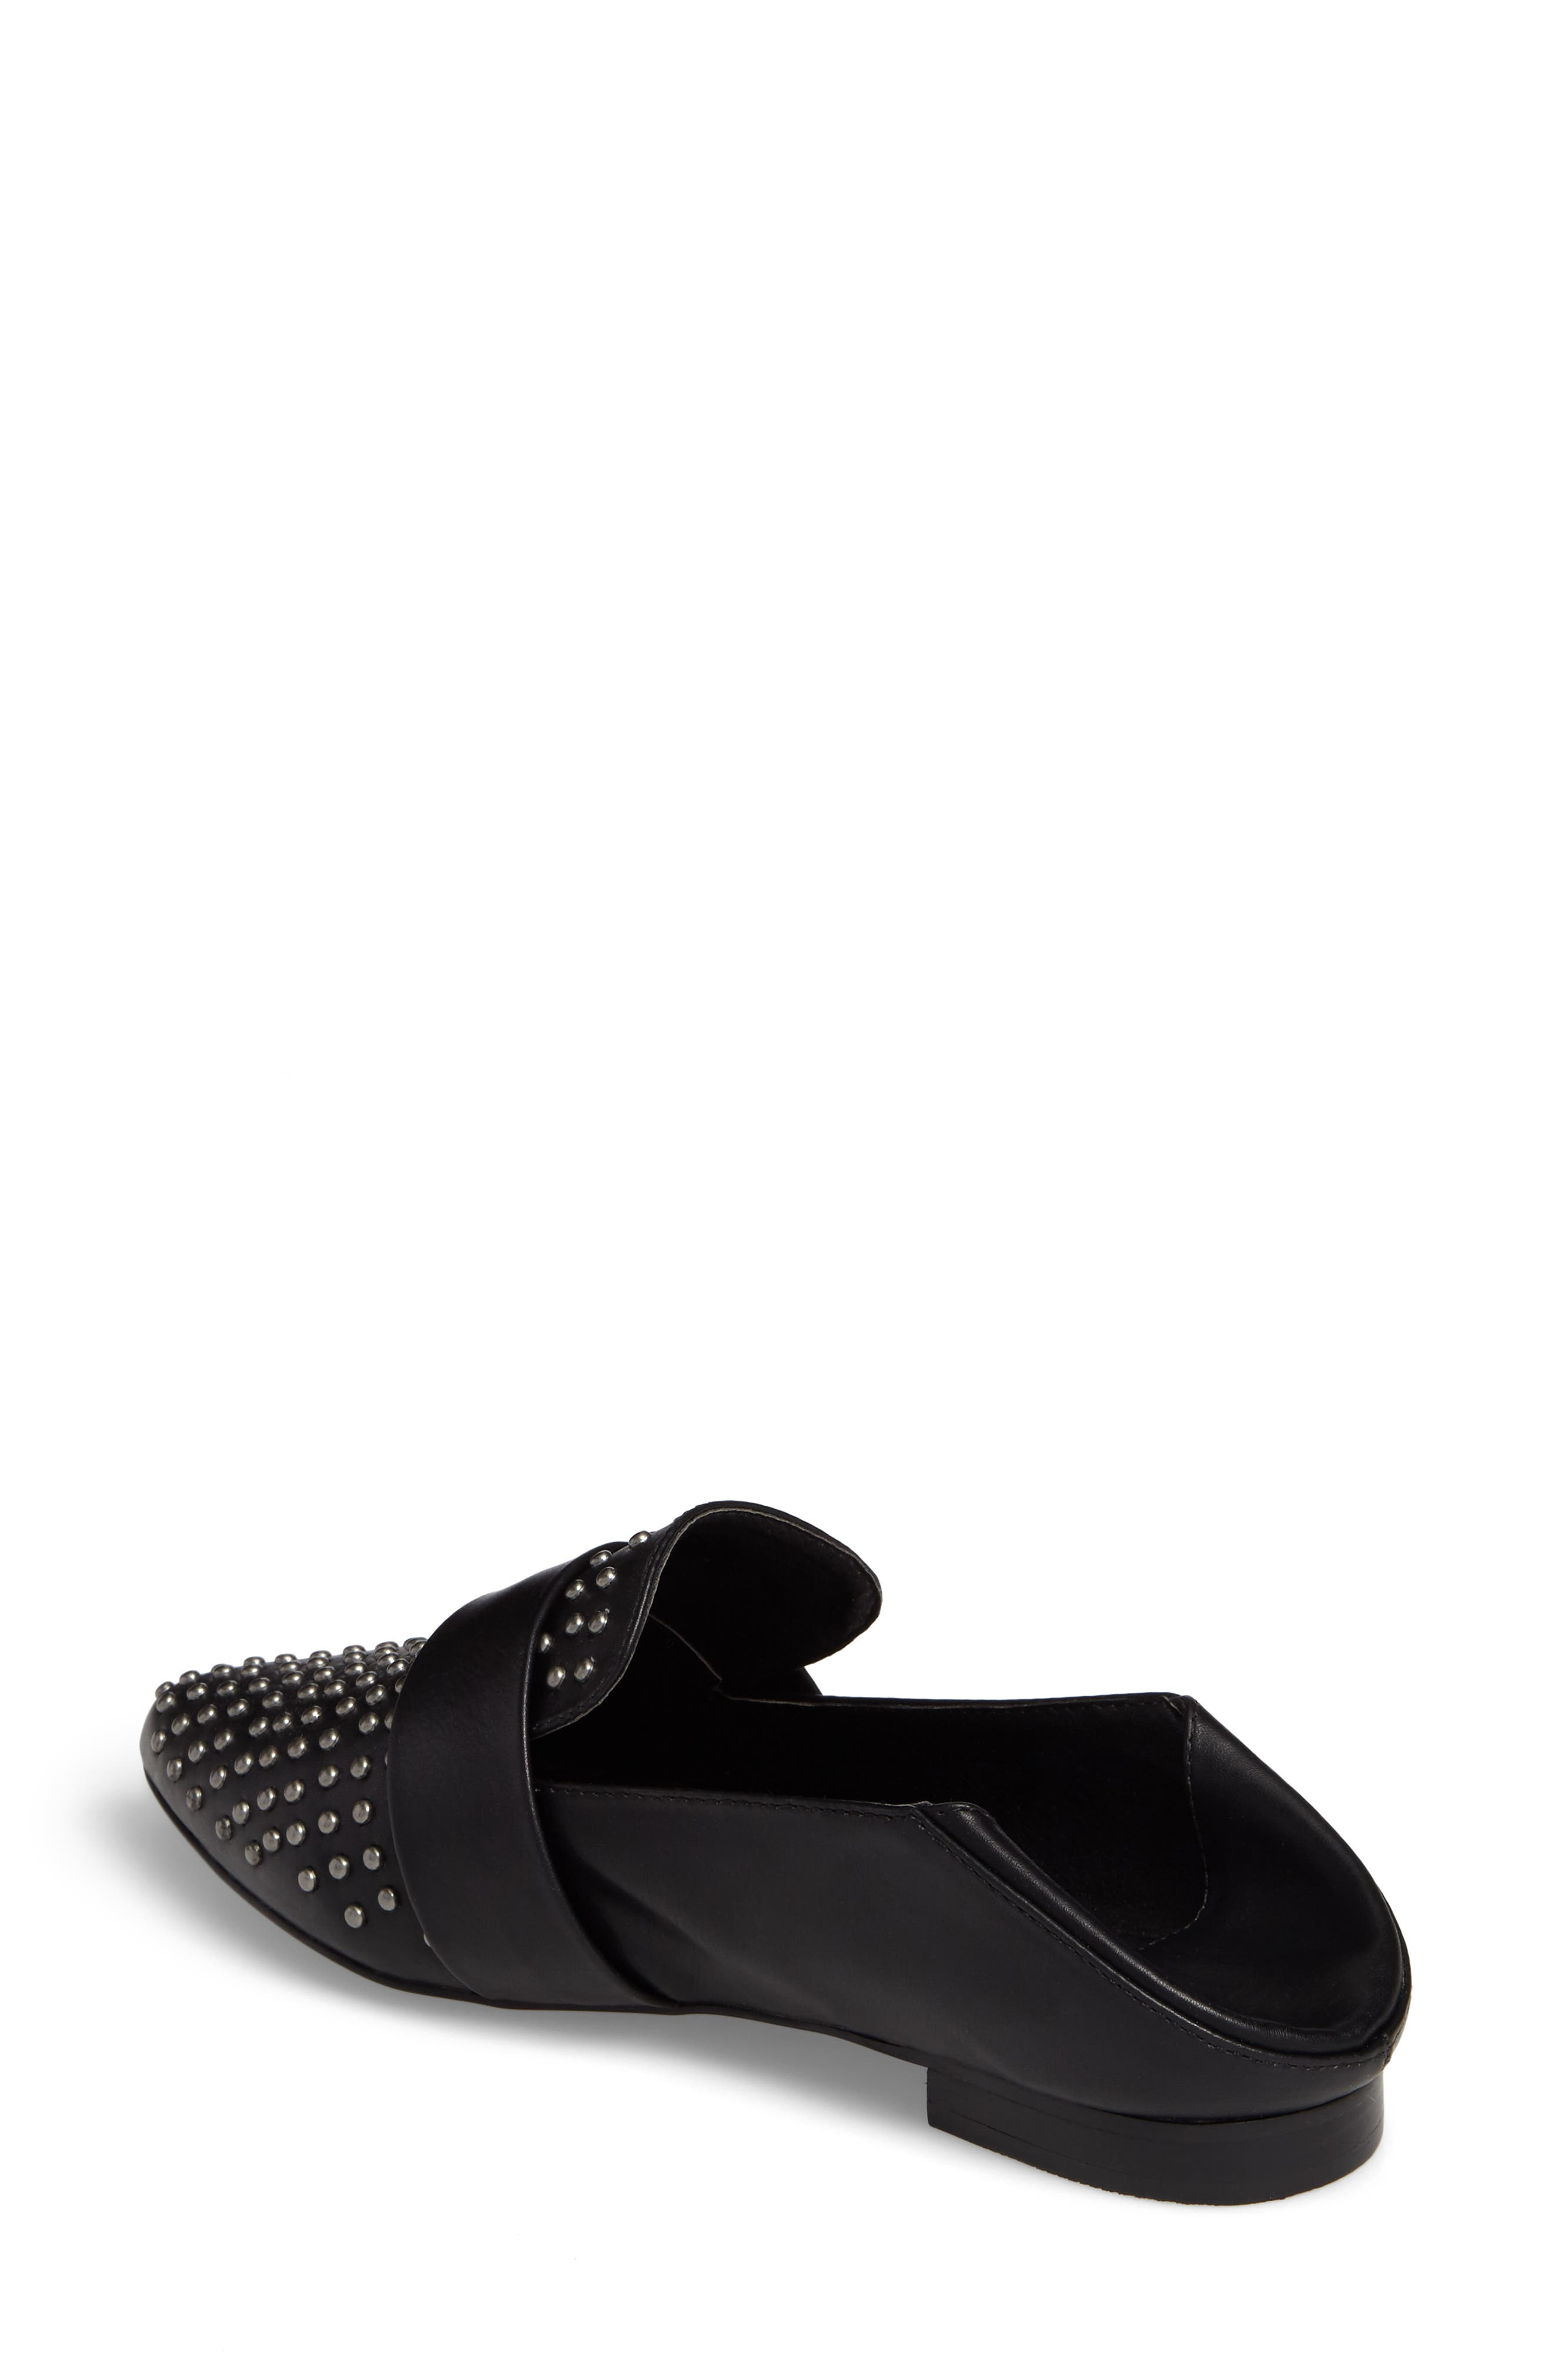 Felix Convertible Loafer,                             Alternate thumbnail 3, color,                             Black